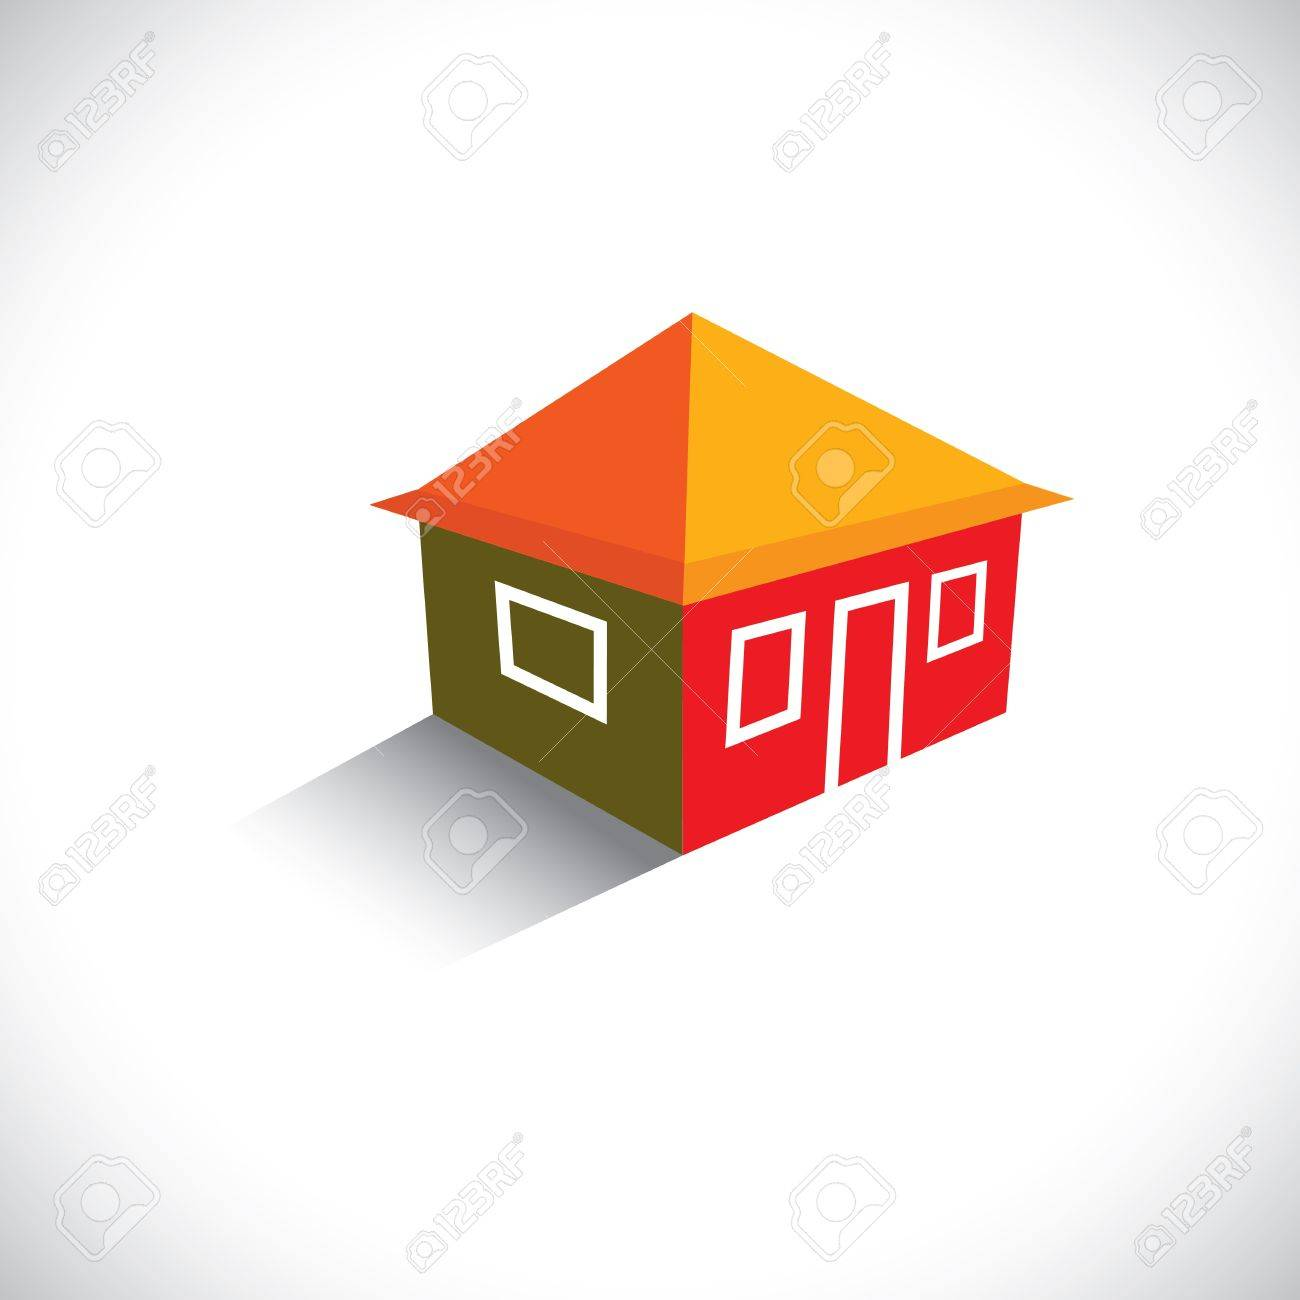 House(home) or hut icon for real estate- graphic. The illustration is also a icon for buying & selling property, residential accommodations, travel & tourism, camping, hiking & adventure, etc Stock Vector - 19871246